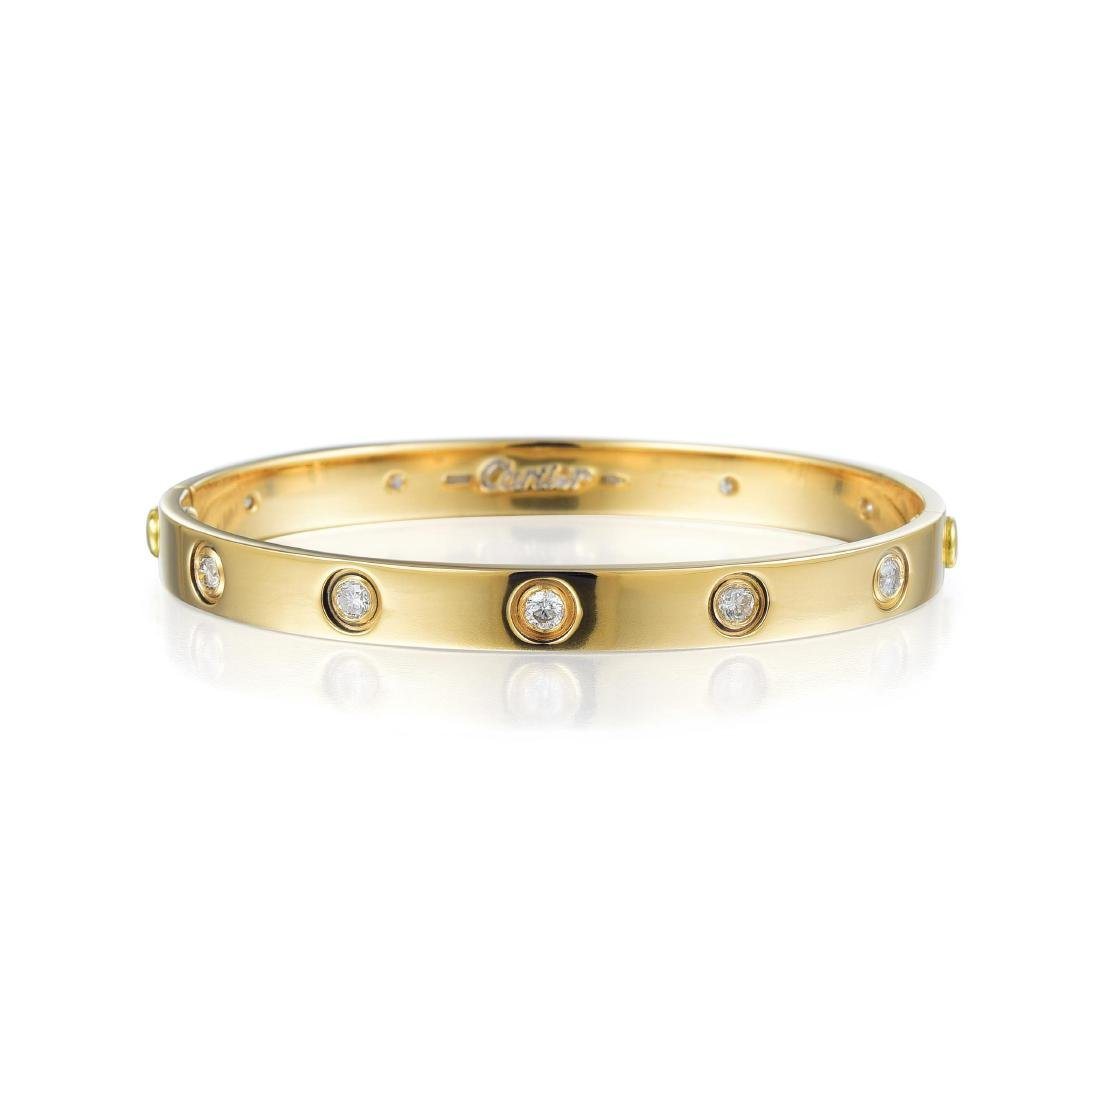 Cartier 18K Gold and Diamond Love Bracelet, with